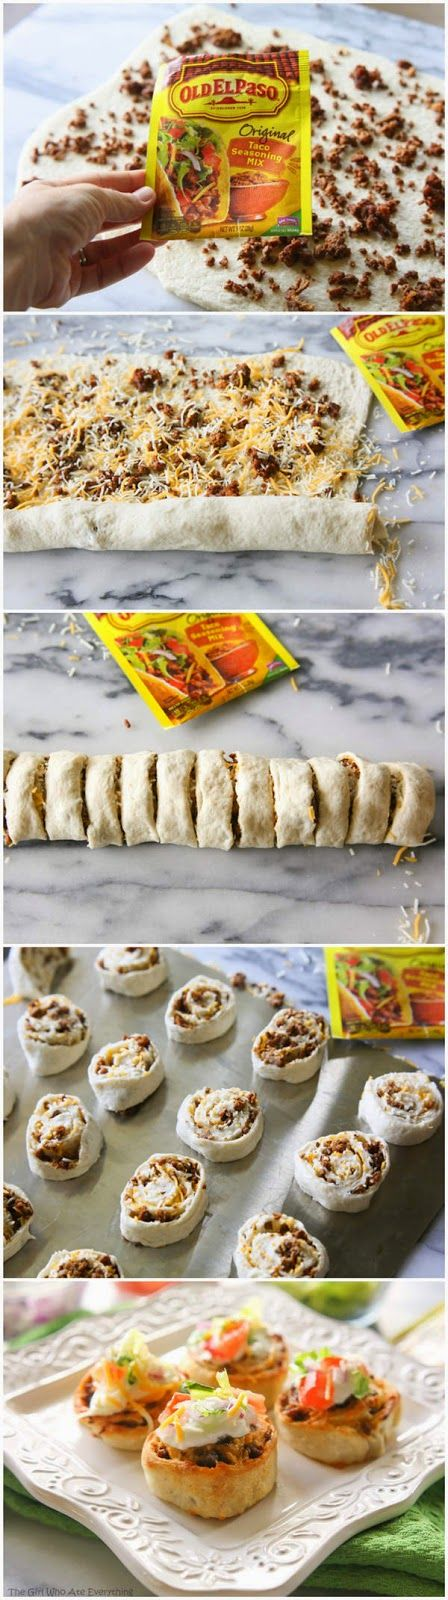 Taco Pizza Rolls | kitchenshares